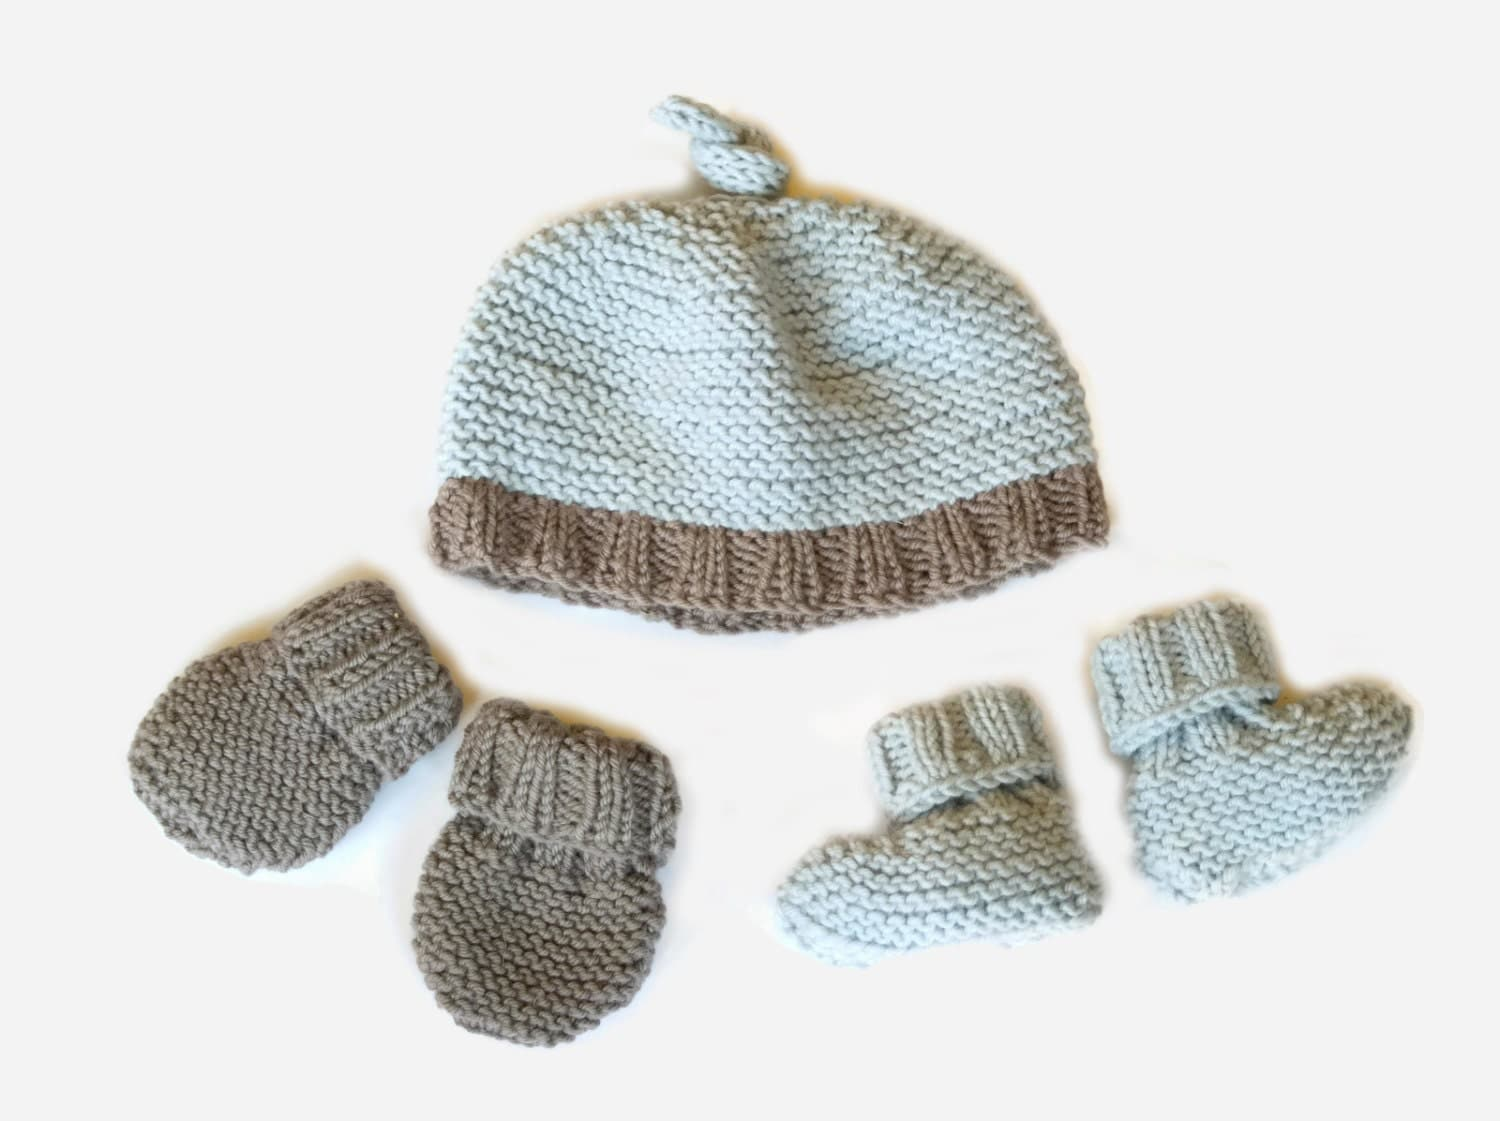 Basic Knitting Pattern For Baby Mittens : Easy Knitting Pattern: baby hat booties & mittens by ...